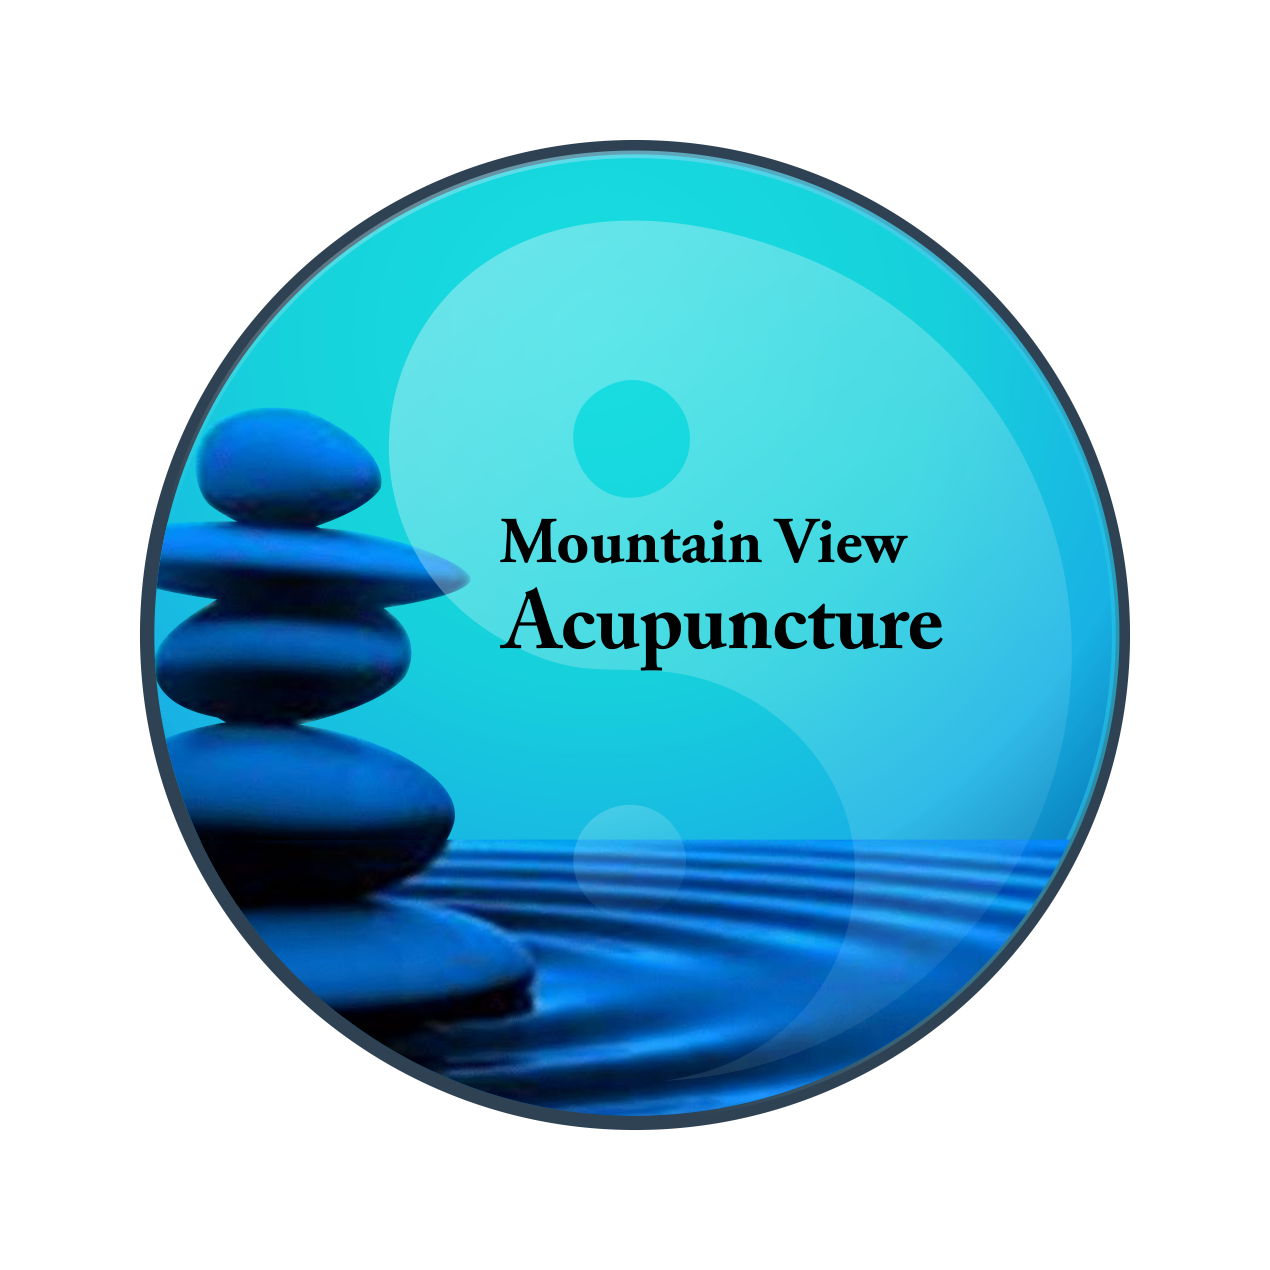 Mountain View Acupuncture